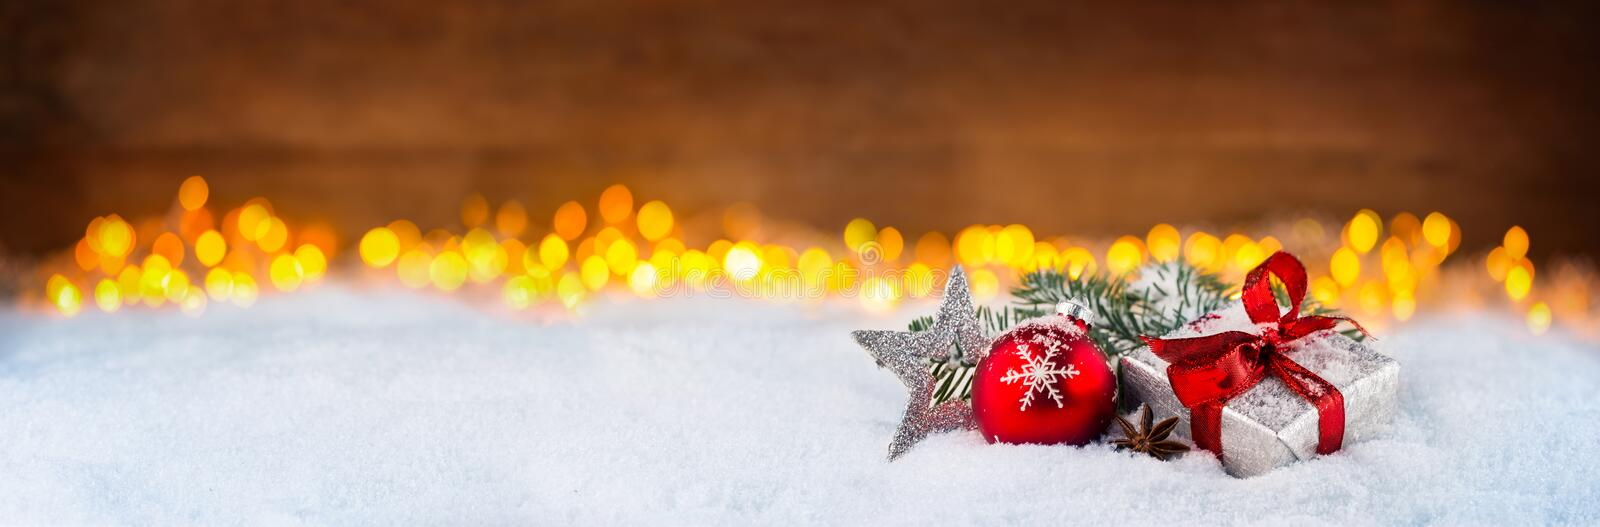 Christmas gift present box ribbon red star silver decoration bauble on snow in front of bright lights golden warm bokeh wide royalty free stock photo